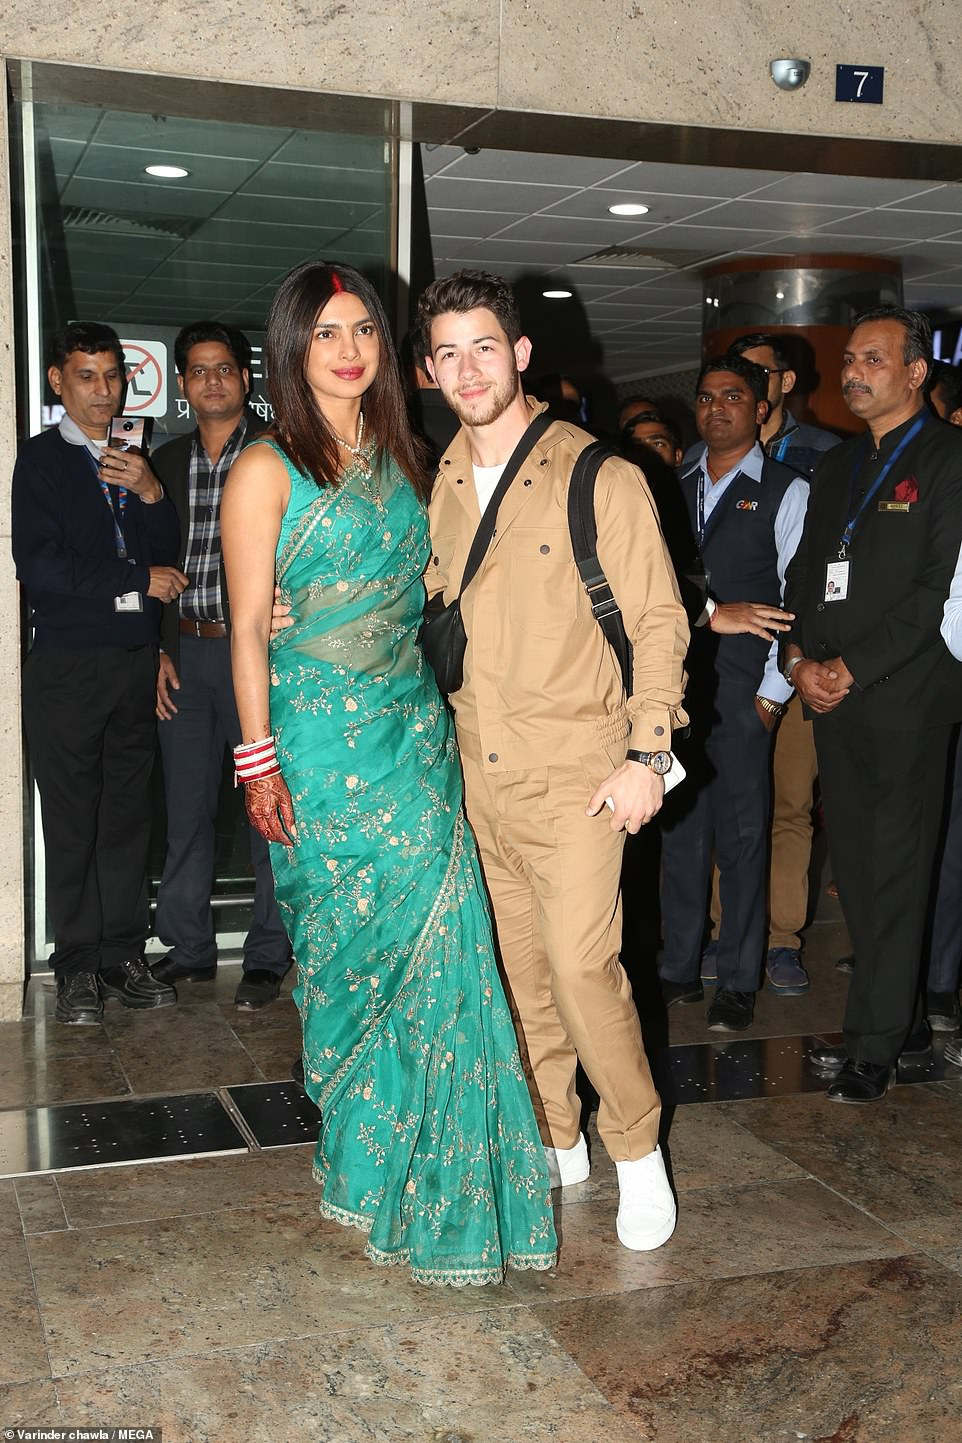 More partying to come! The couple arrived in New Delhi Monday for their Tuesday reception in the capital, where their guest list is rumored to include Indian Prime Minister Narendra Modi